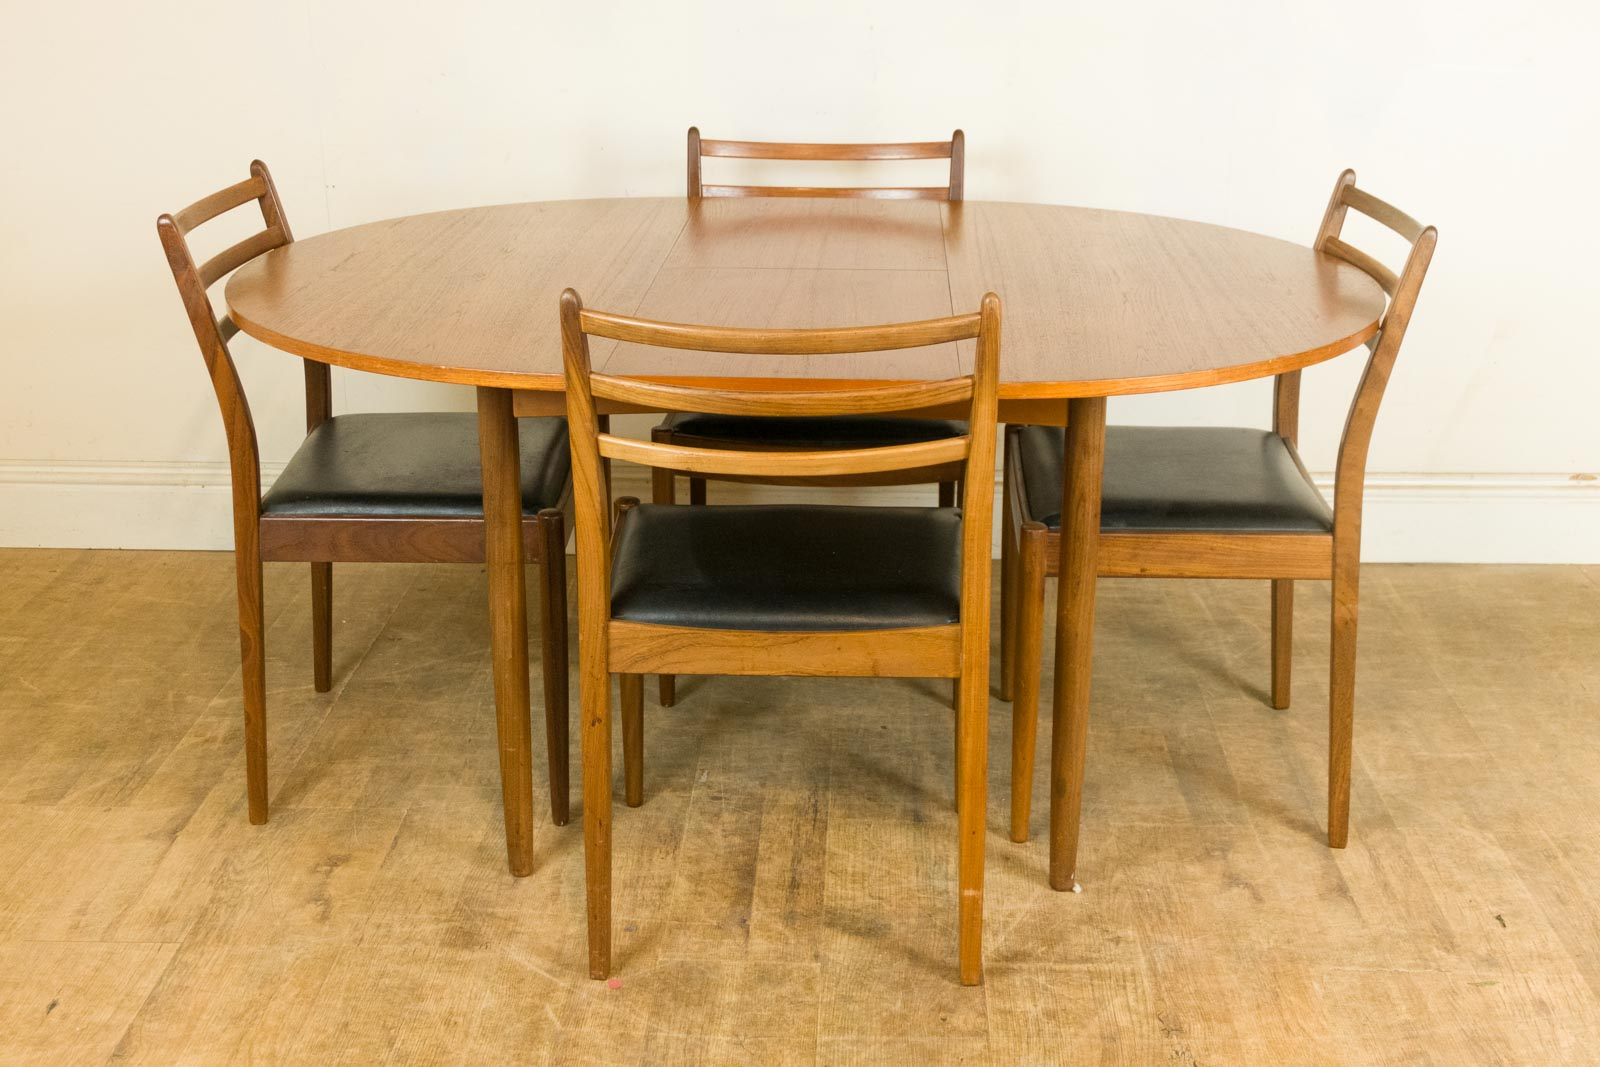 Vintage retro teak mid century dining table and 4 chairs for G plan teak dining room furniture